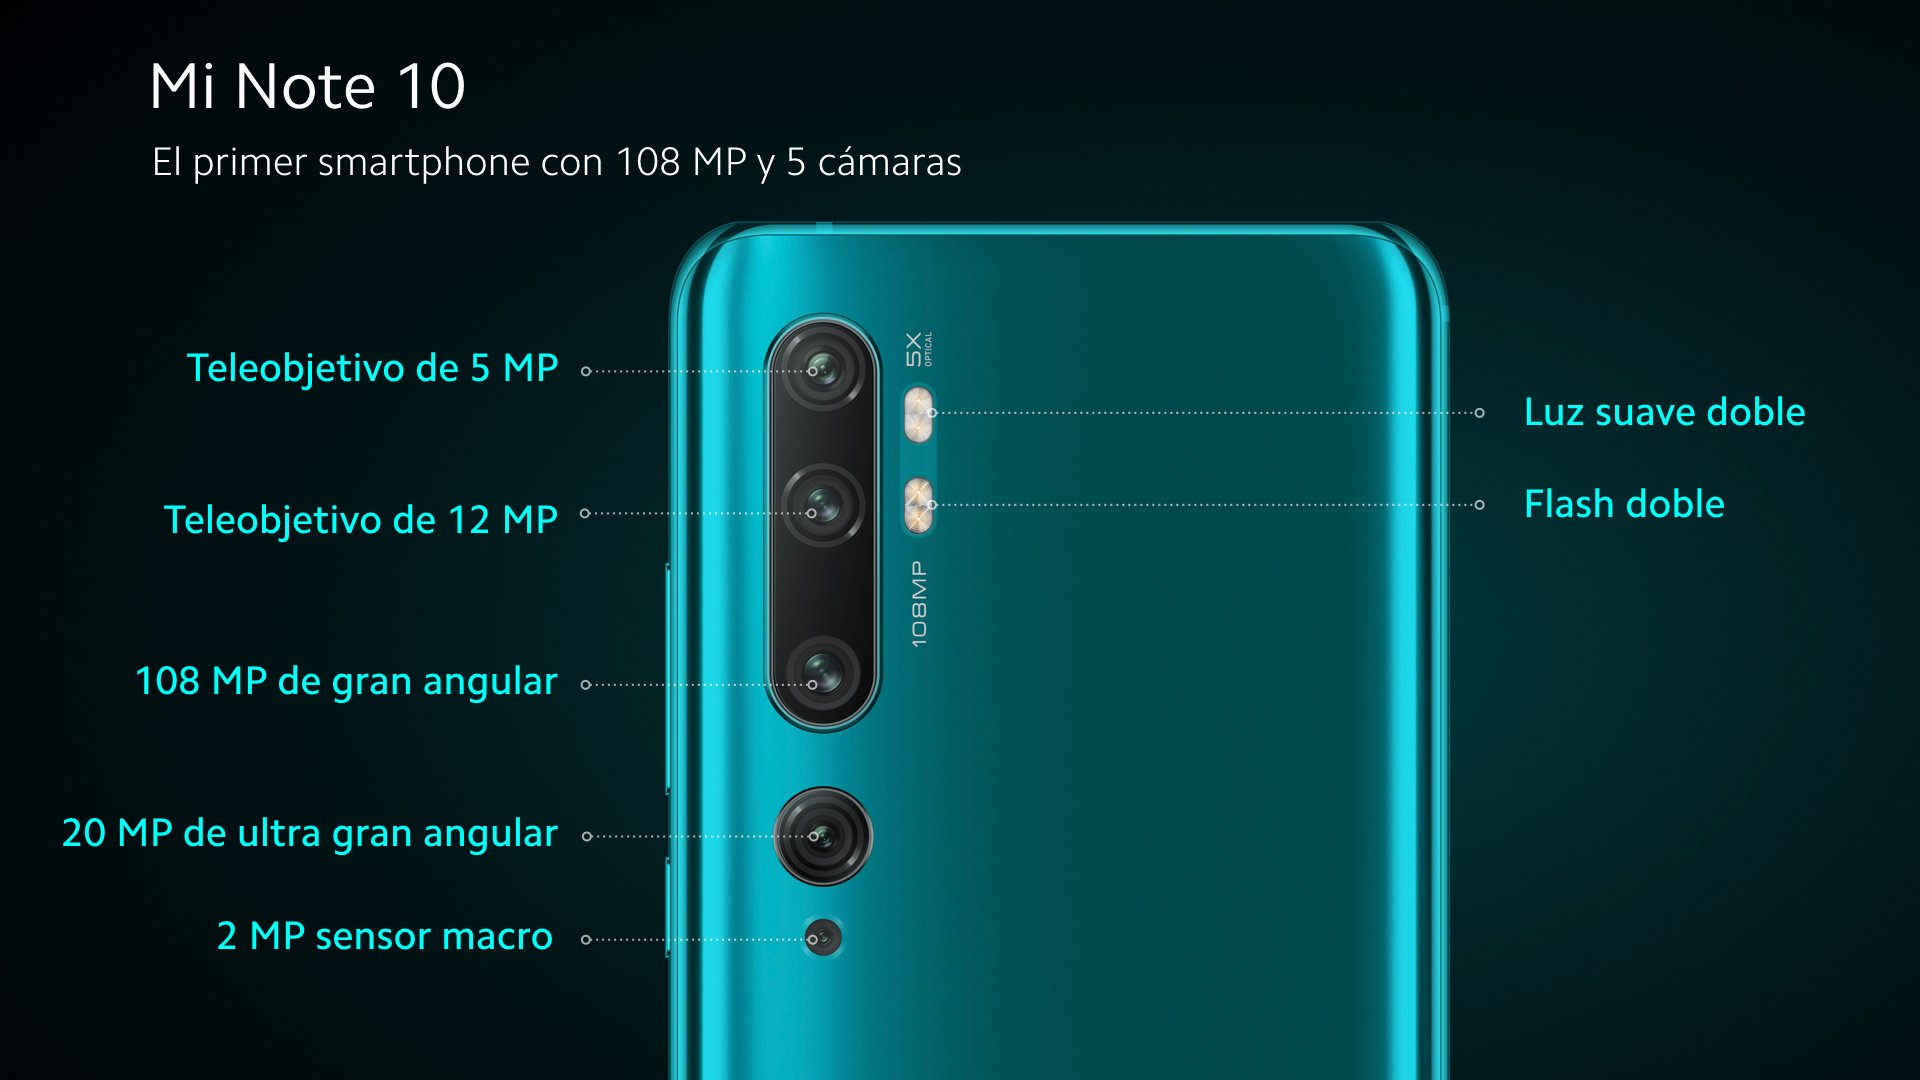 Xiaomi Mi Note 10 and Mi Note 10 Pro, features, specifications, differences and price. Xiaomi Addicted News